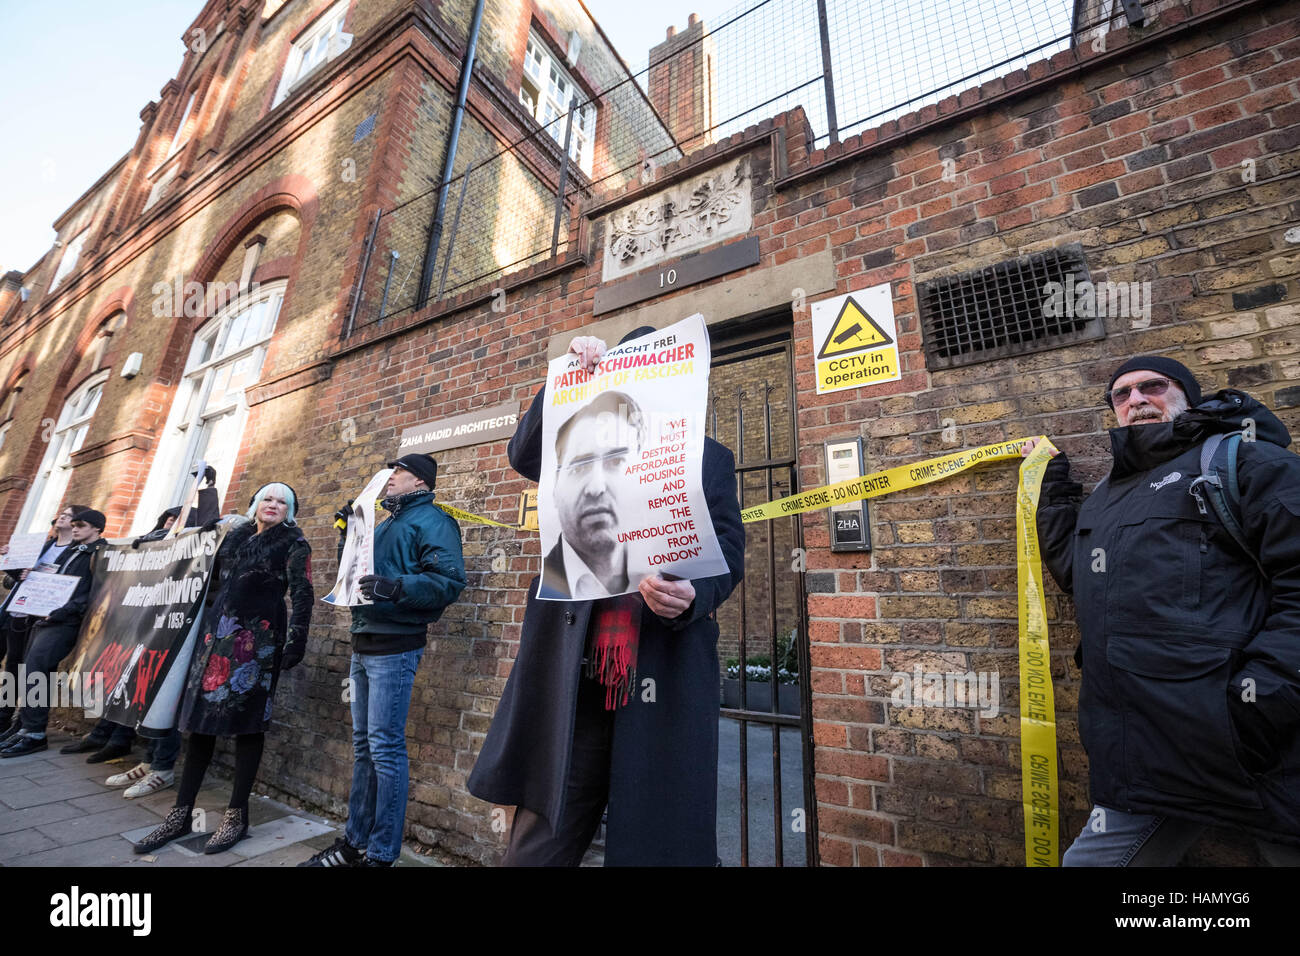 London, UK. 30th November, 2016. Anti-capitalist group Class War and other protesters outside the London offices - Stock Image